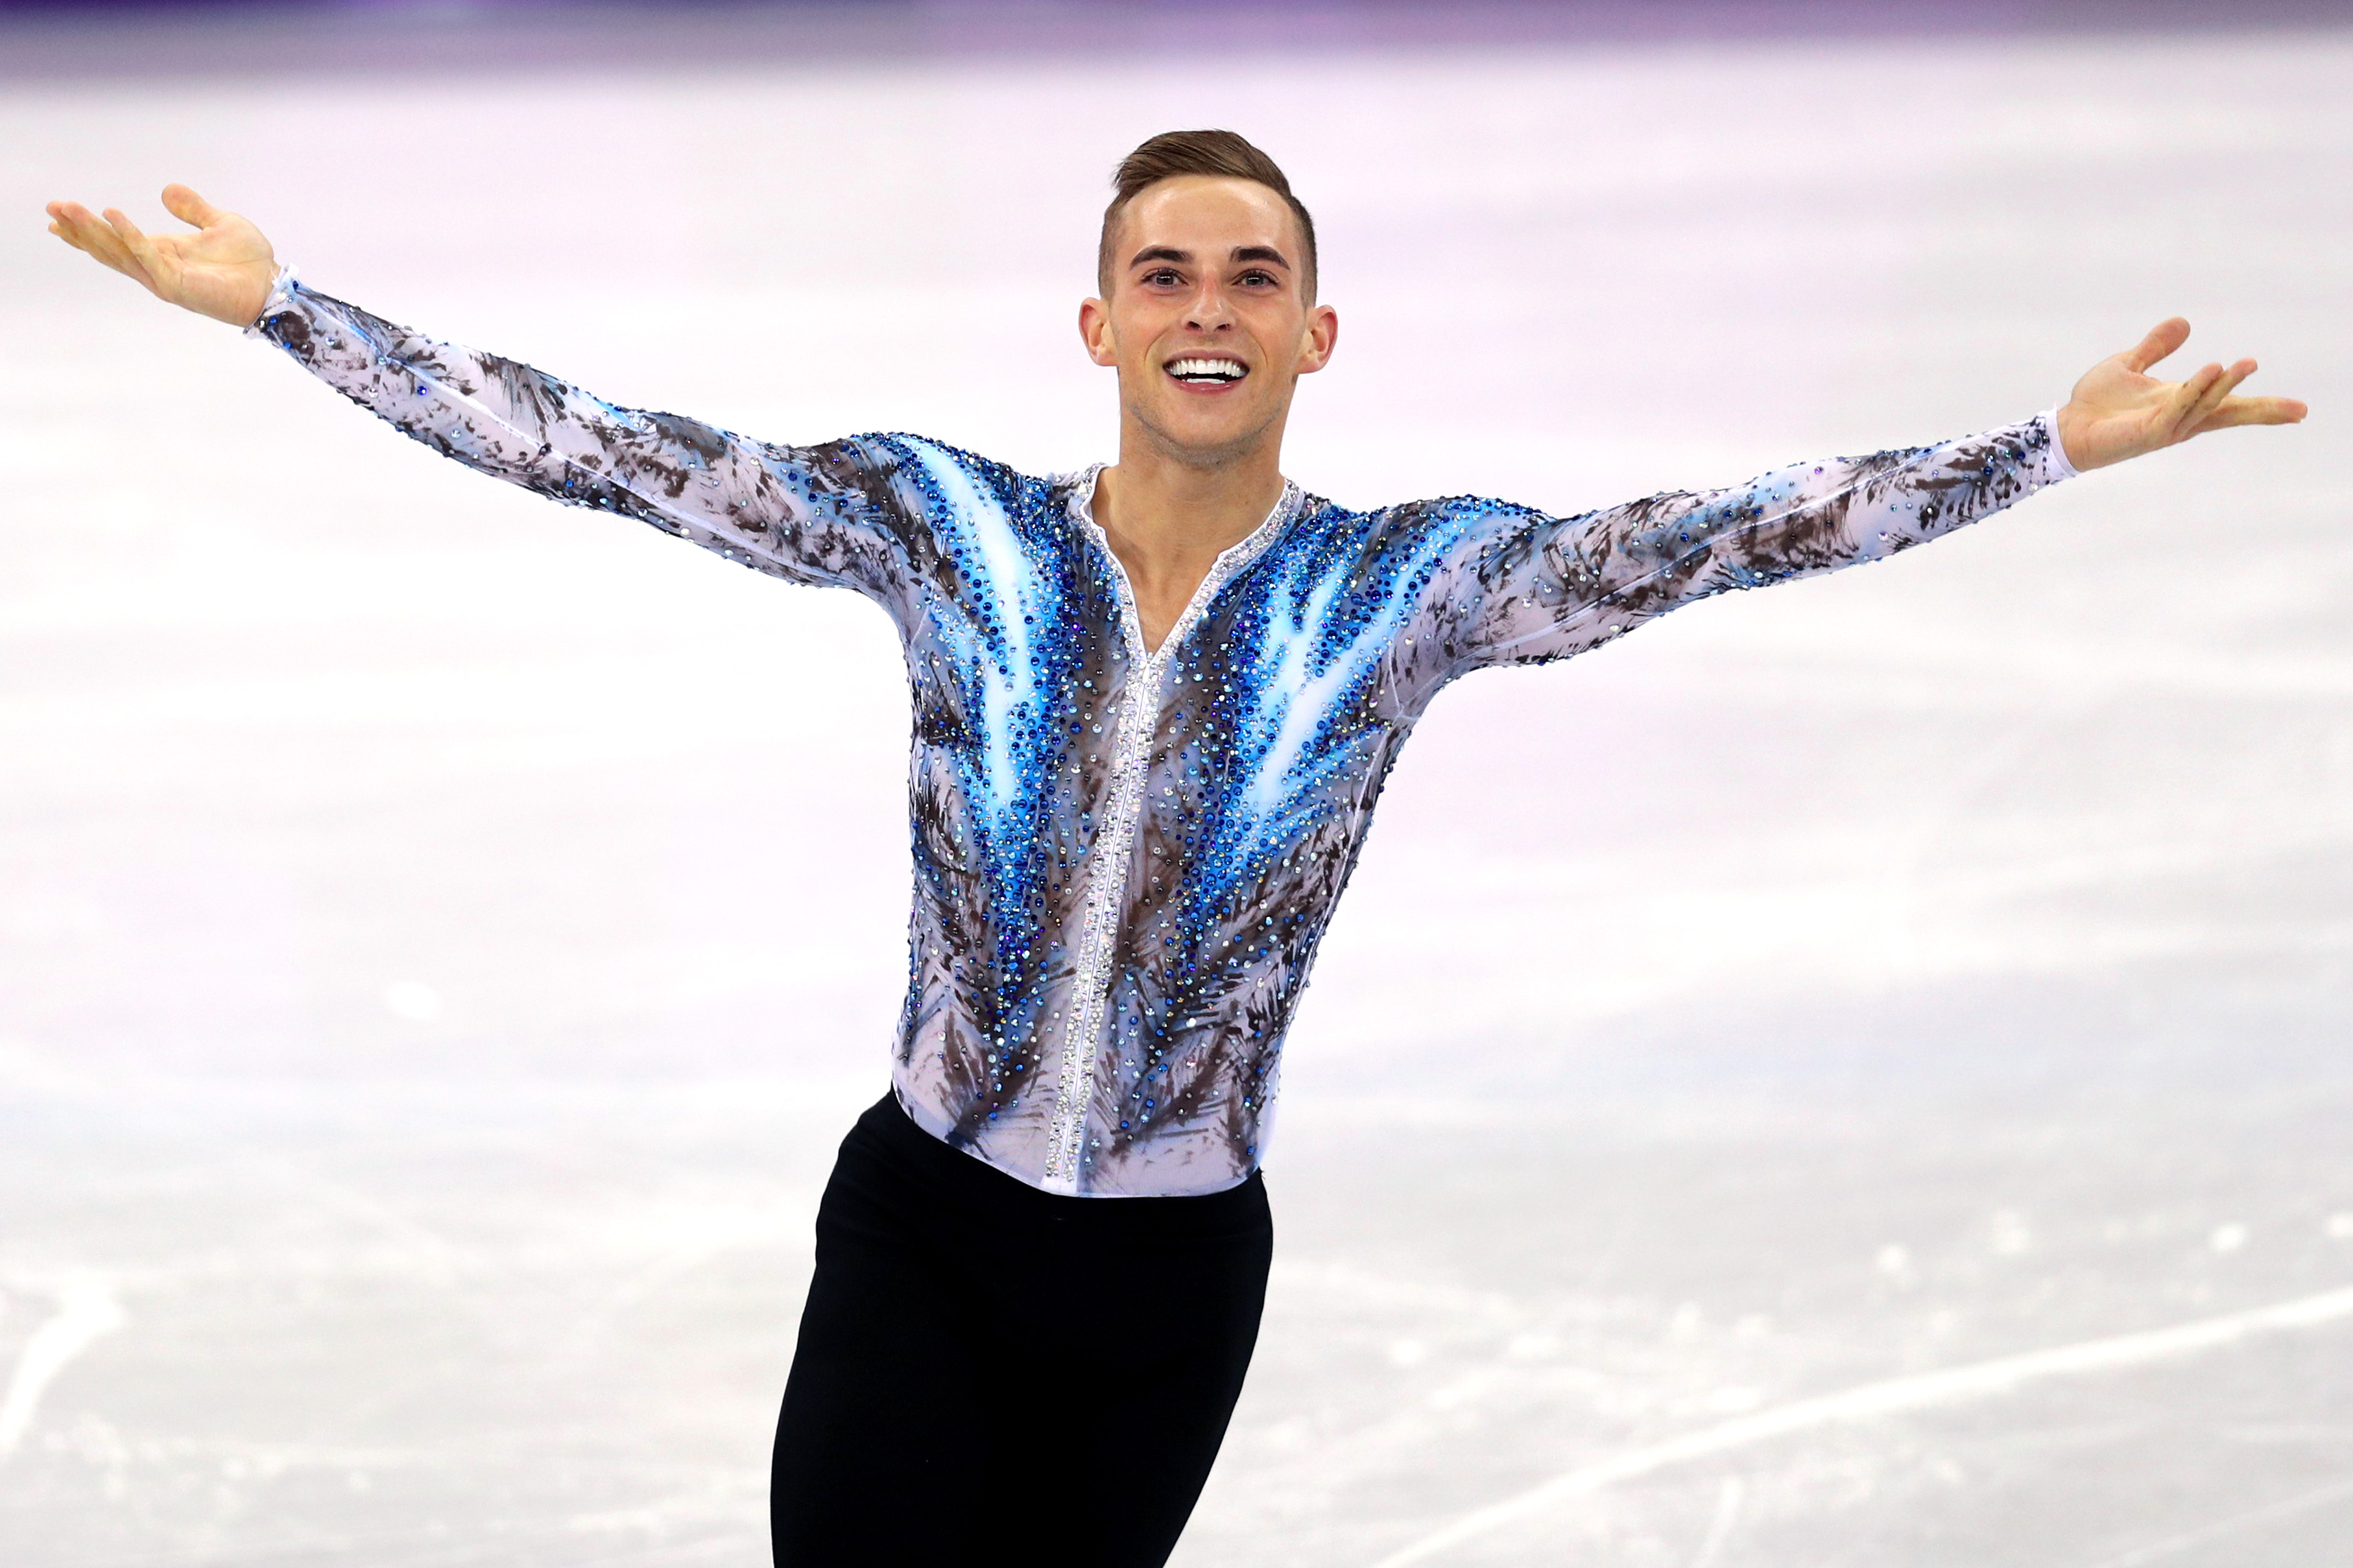 Adam Rippon celebrates after competing in the Figure Skating Team Event Men's Single Free Skating on day three of the PyeongChang 2018 Winter Olympic Games at Gangneung Ice Arena on Feb. 12, 2018 in Gangneung, South Korea